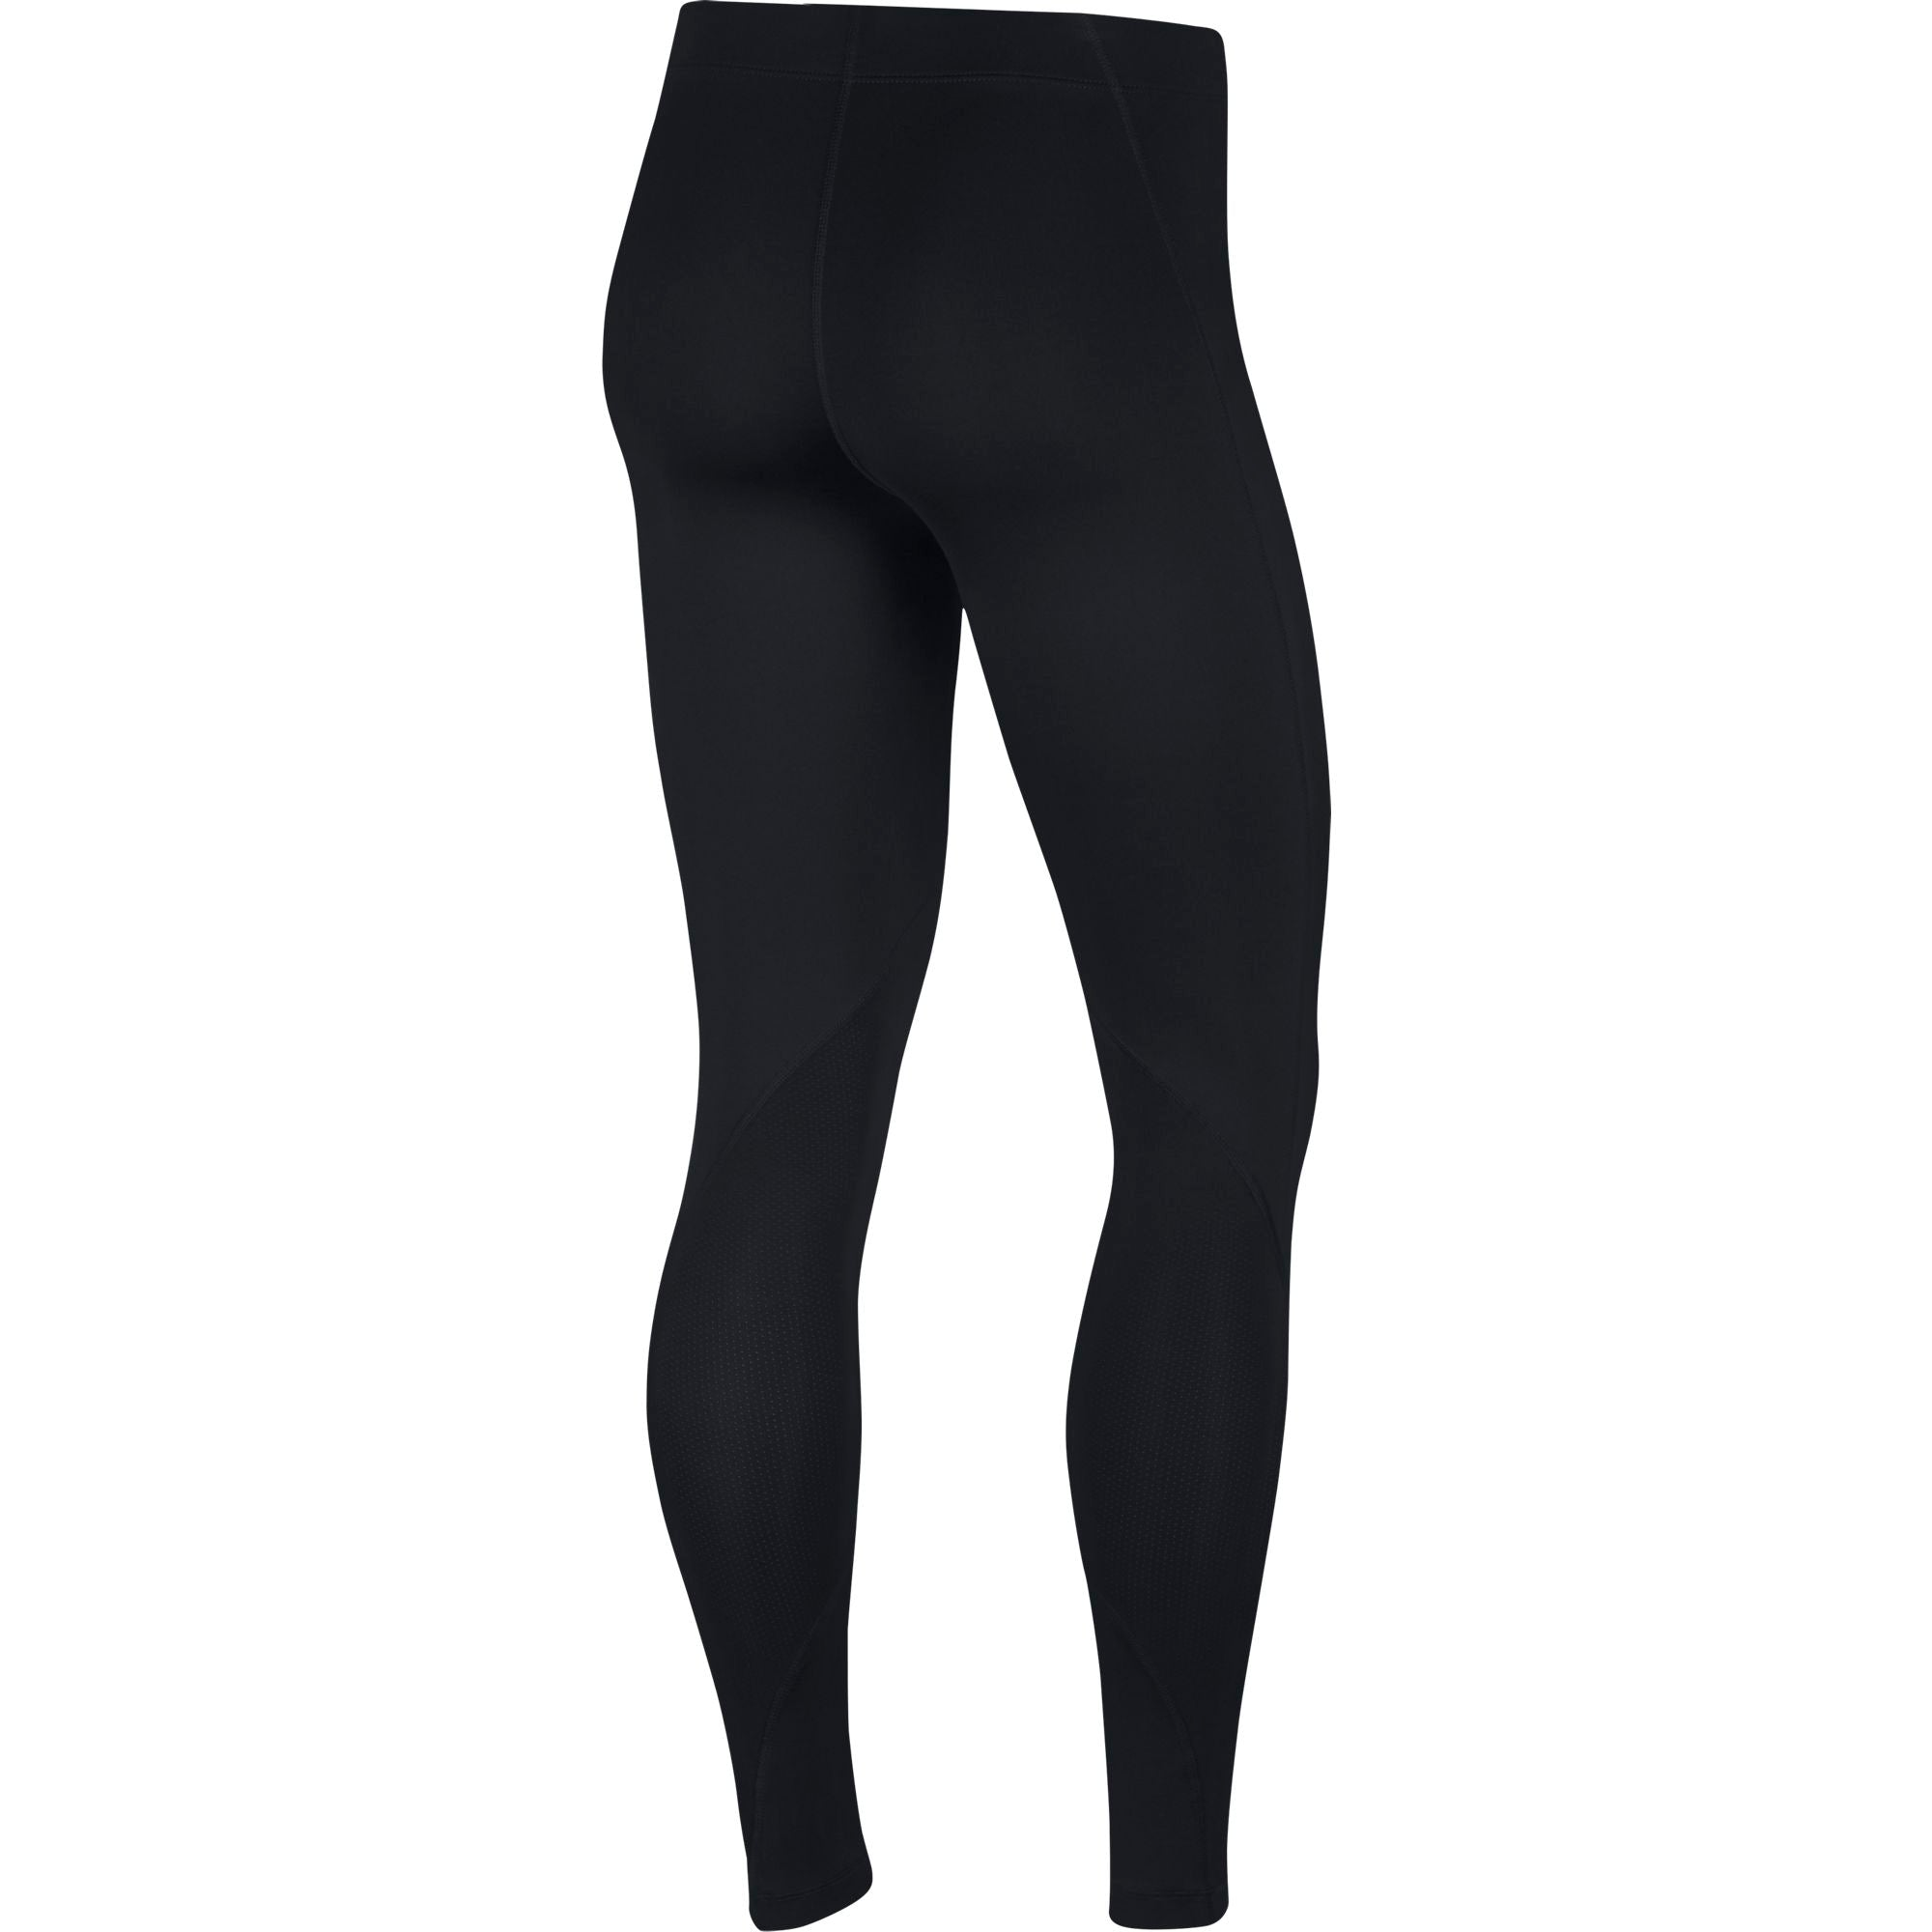 Nike Womens Pro Base Layer Tights - Black/White